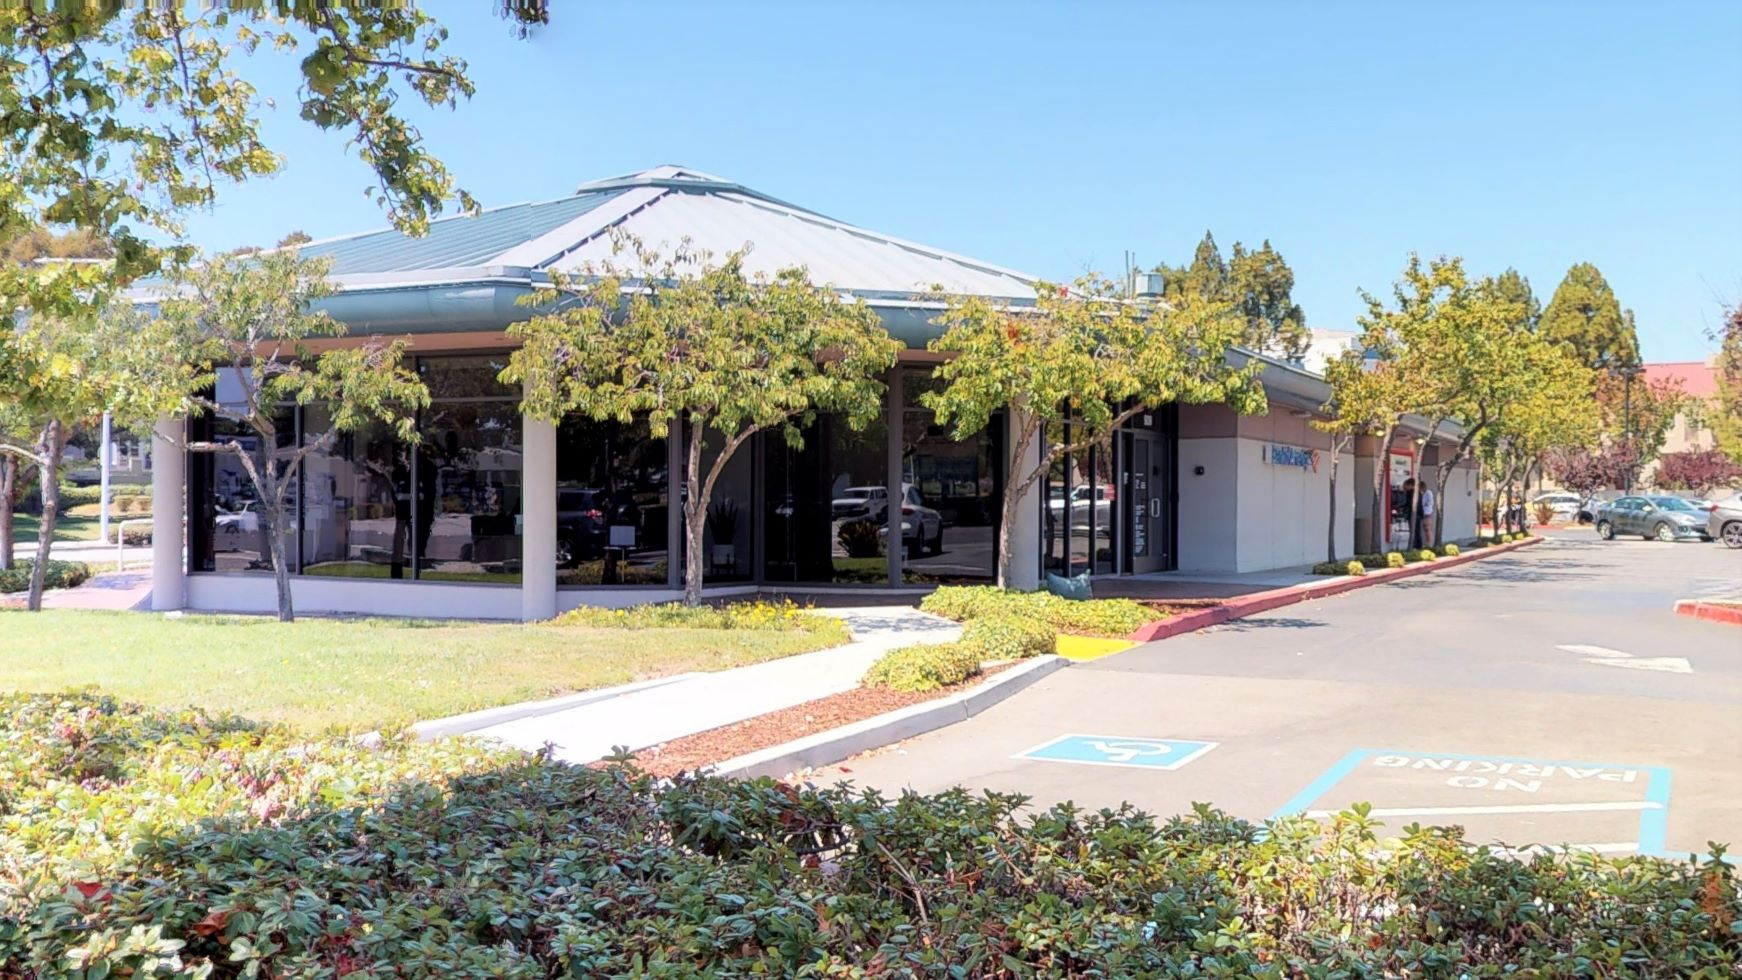 Bank of America financial center with walk-up ATM | 909 E Hillsdale Blvd, Foster City, CA 94404